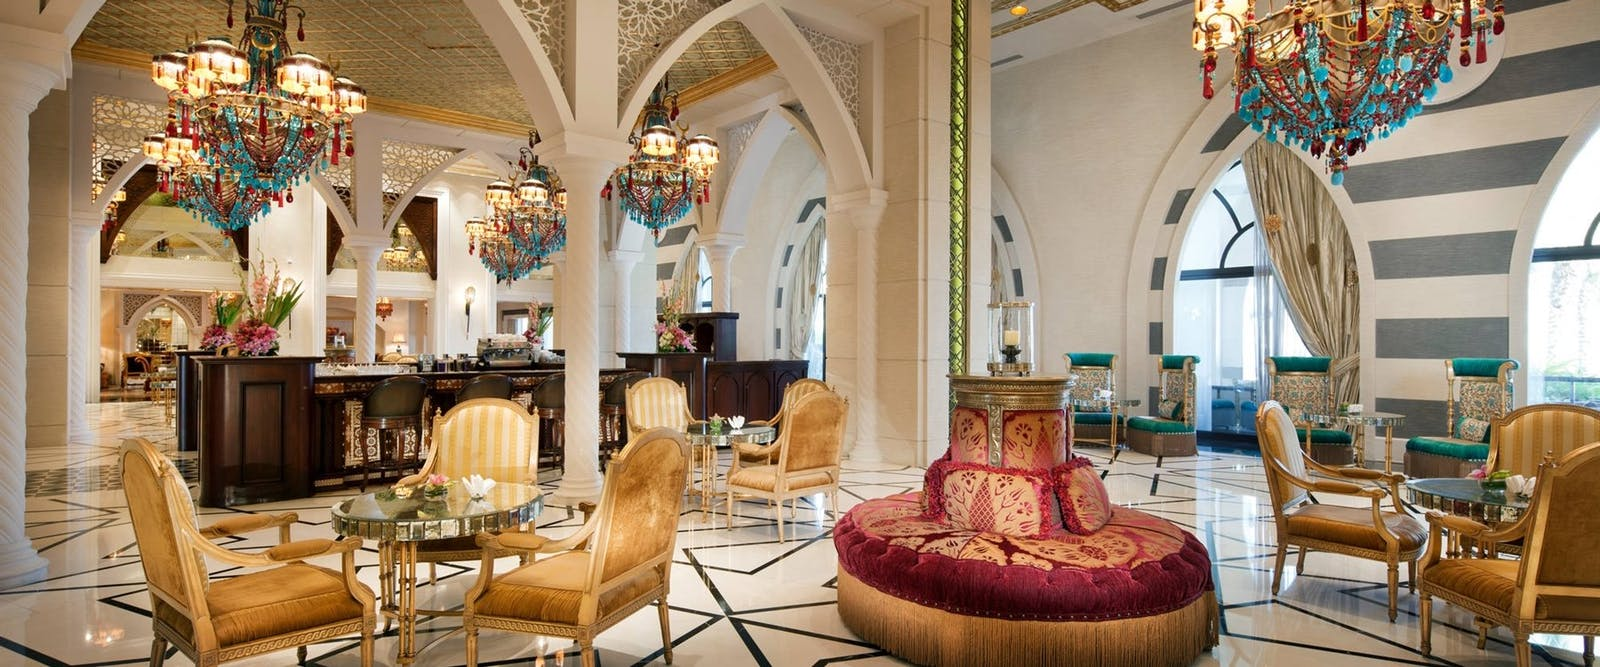 Sultan lounge at Jumeirah Zabeel Saray, Dubai